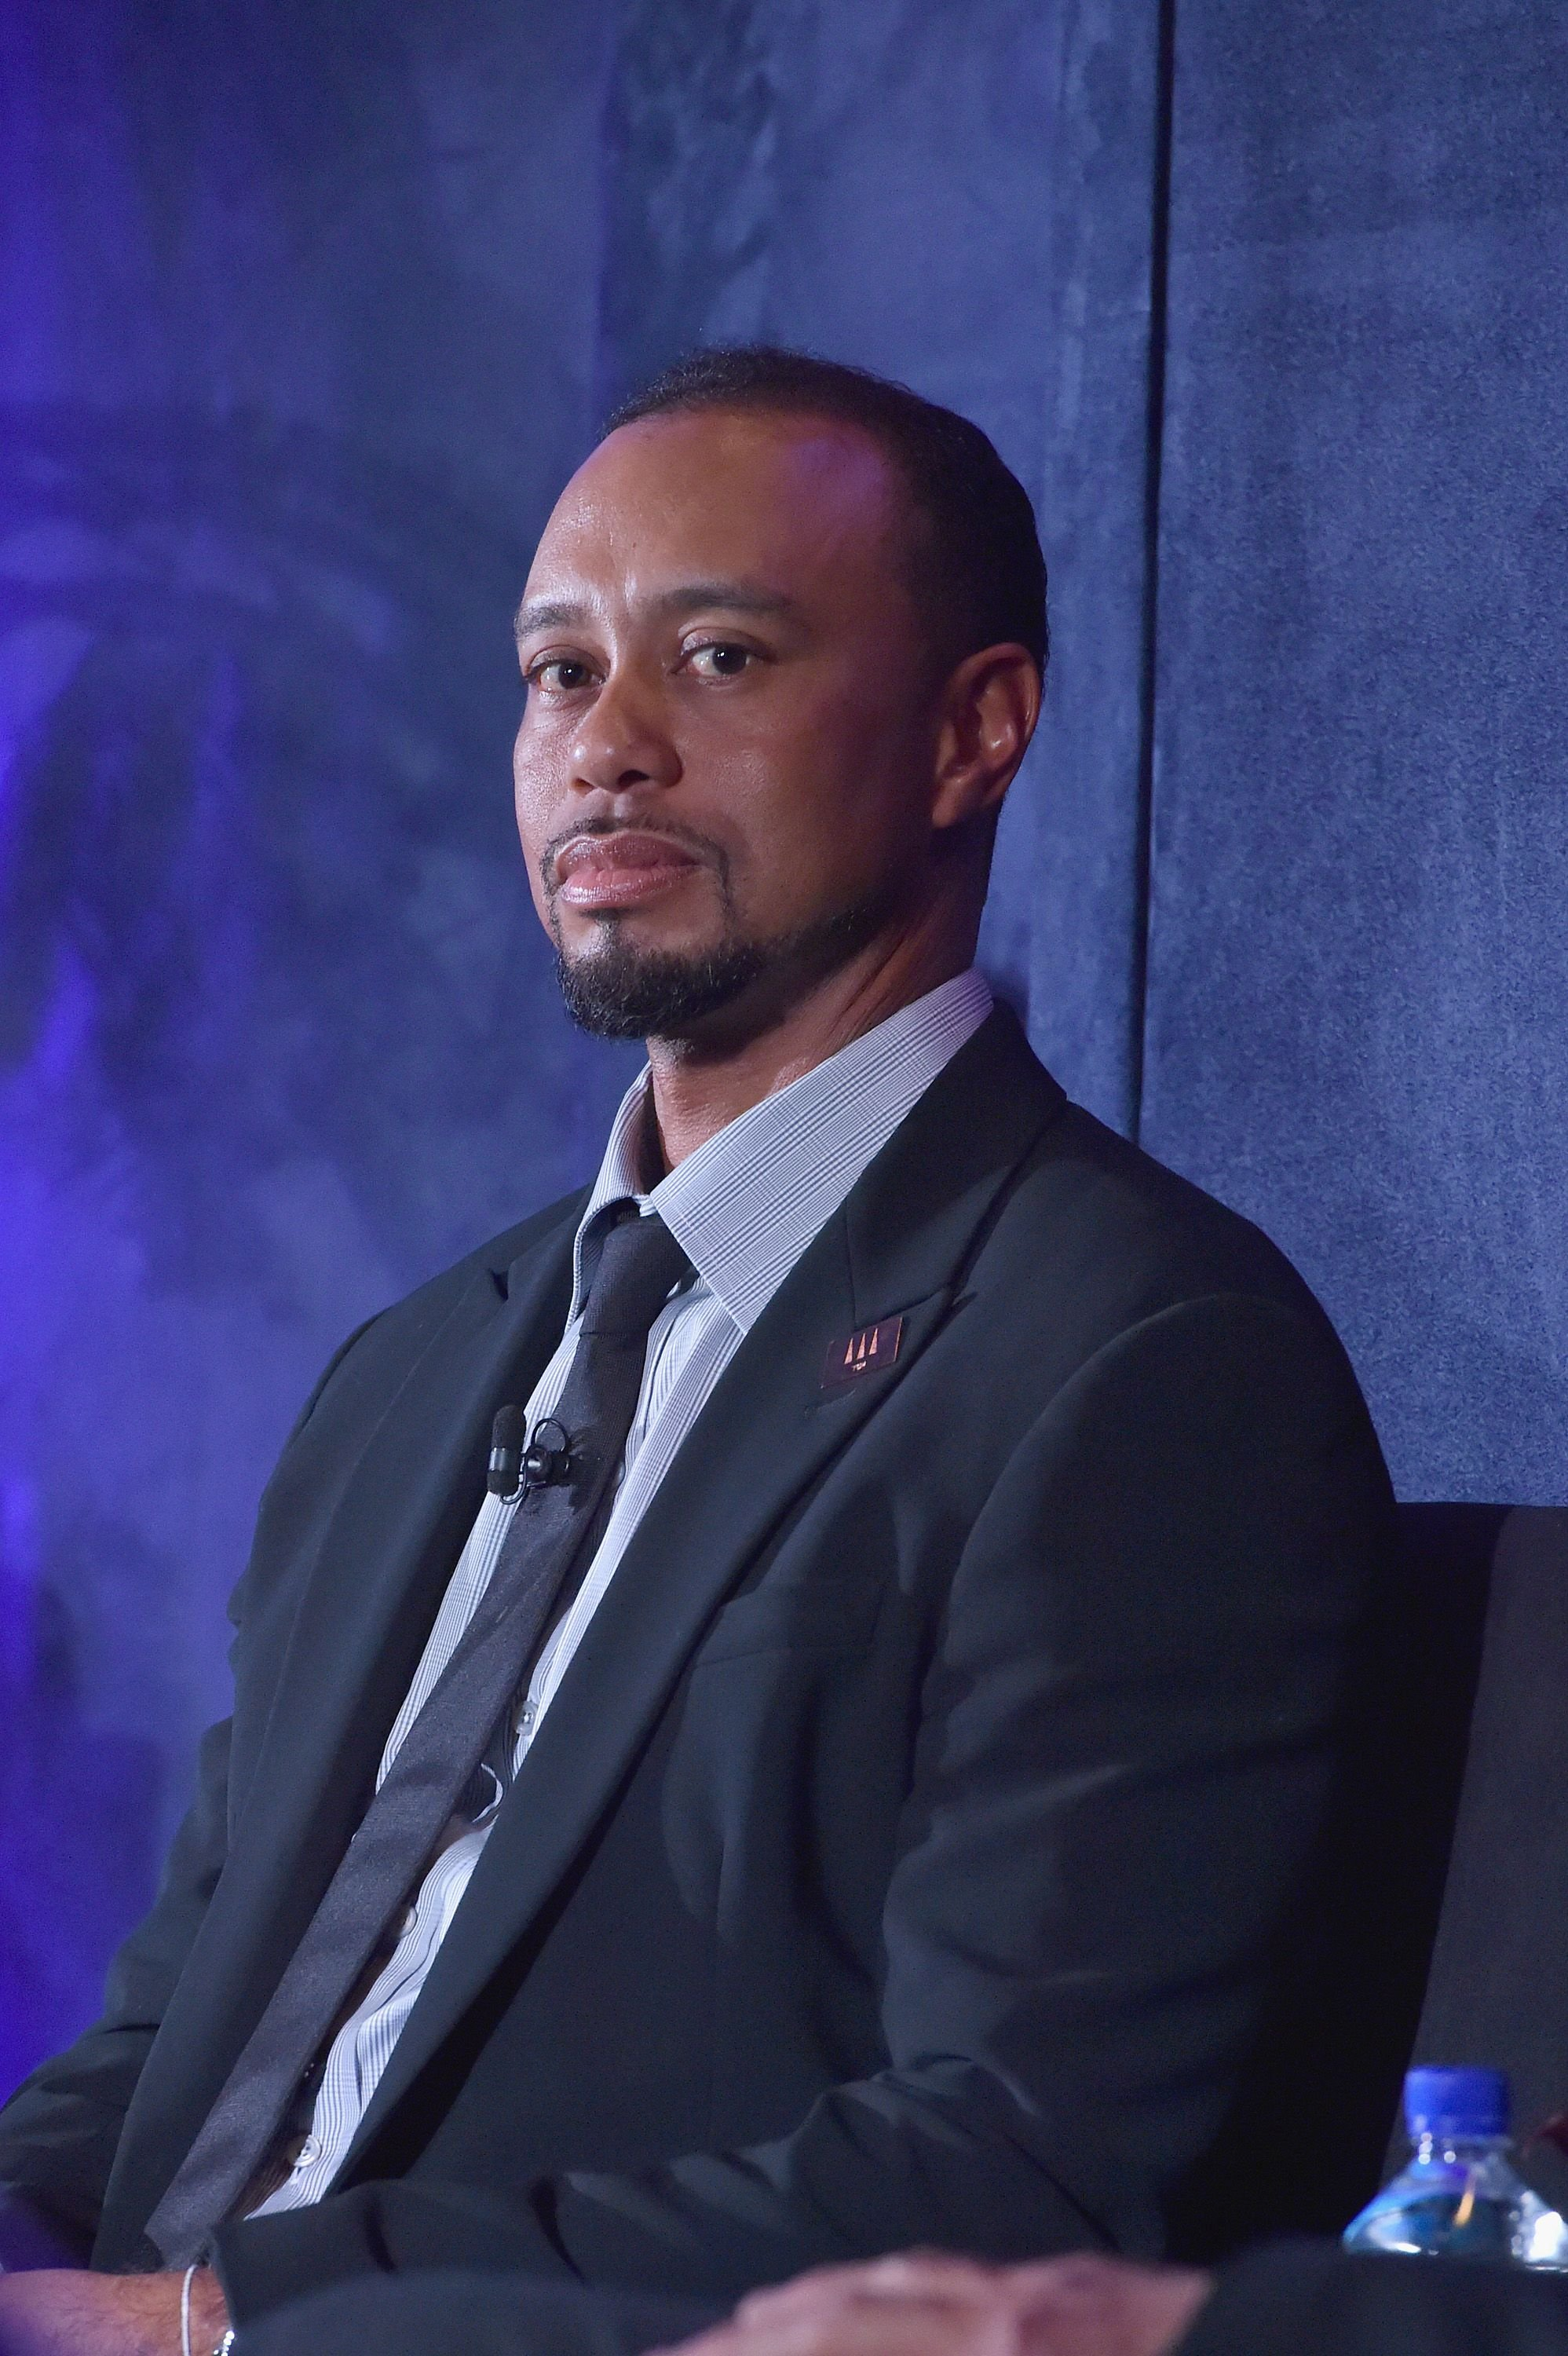 Tiger Woods speaks onstage during the Tiger Woods Foundation's 20th Anniversary Celebration at the New York Public Library on October 20, 2016 in New York City. | Source: Getty Images